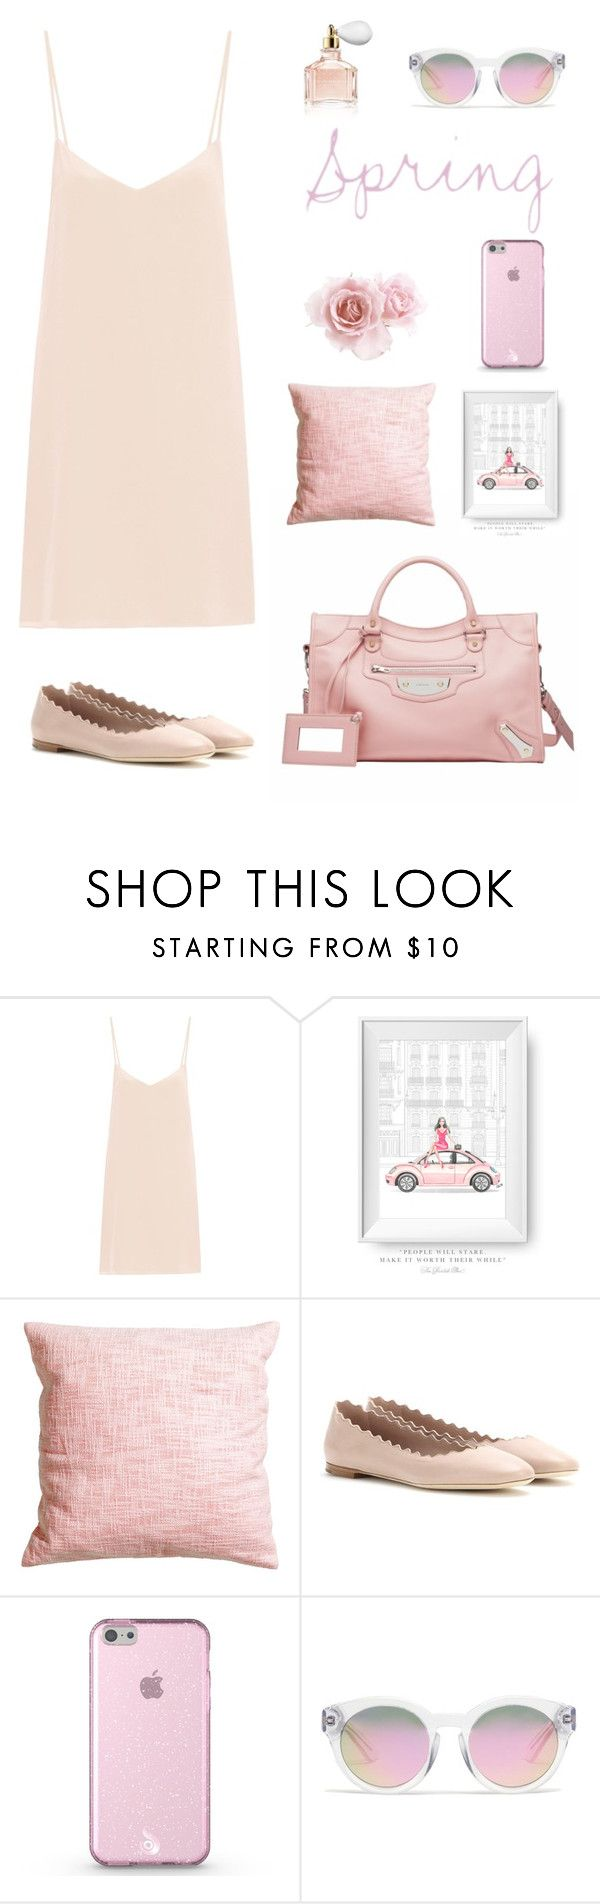 """Discover the pink style"" by licethfashion on Polyvore featuring moda, Raey, H&M, Chloé, Madewell, Guerlain y licethfashion"